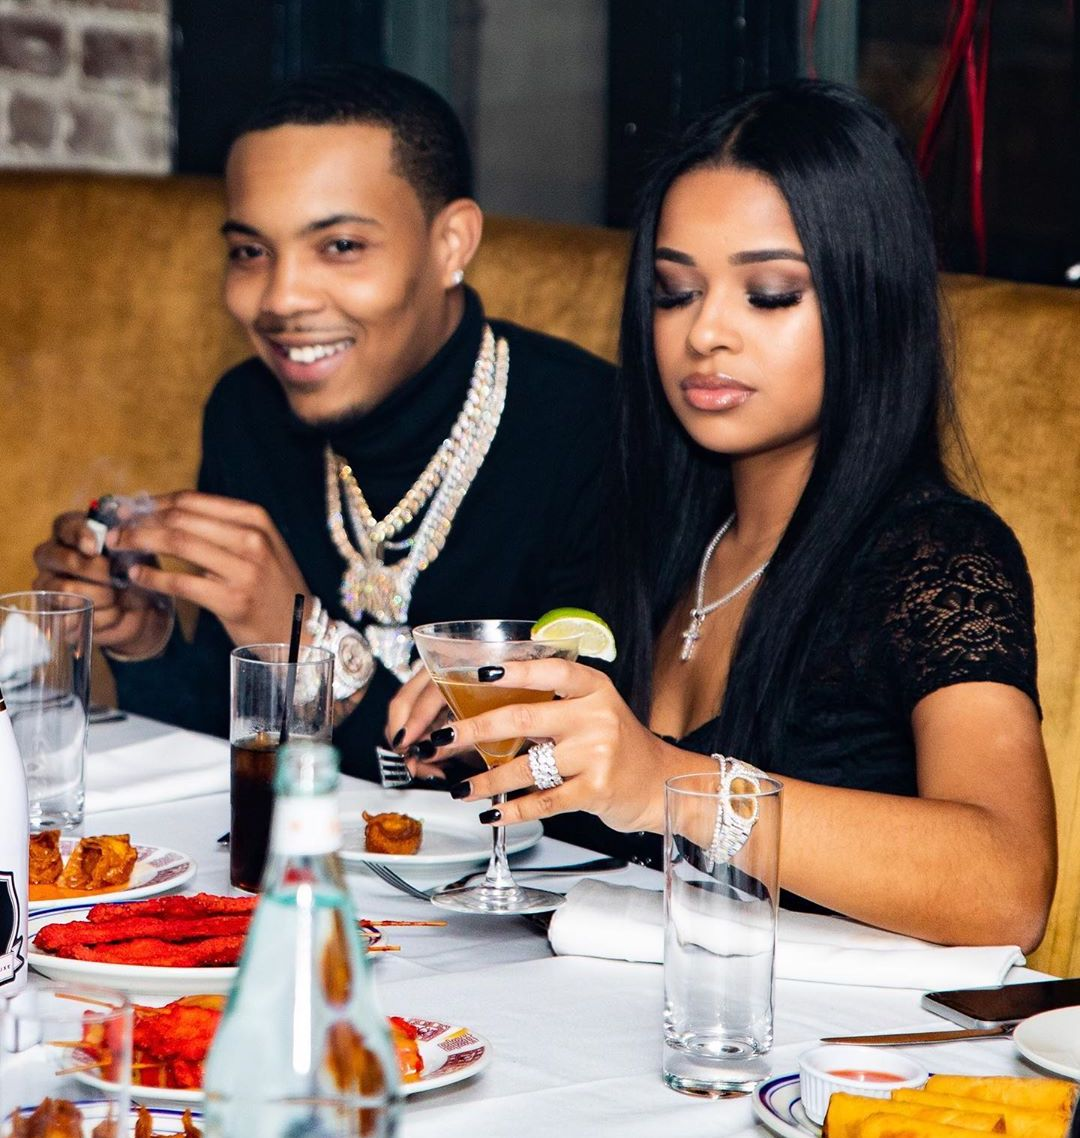 Taina Gifts G Herbo With An Amazing Car And Watch For His Birthday - See The Clips